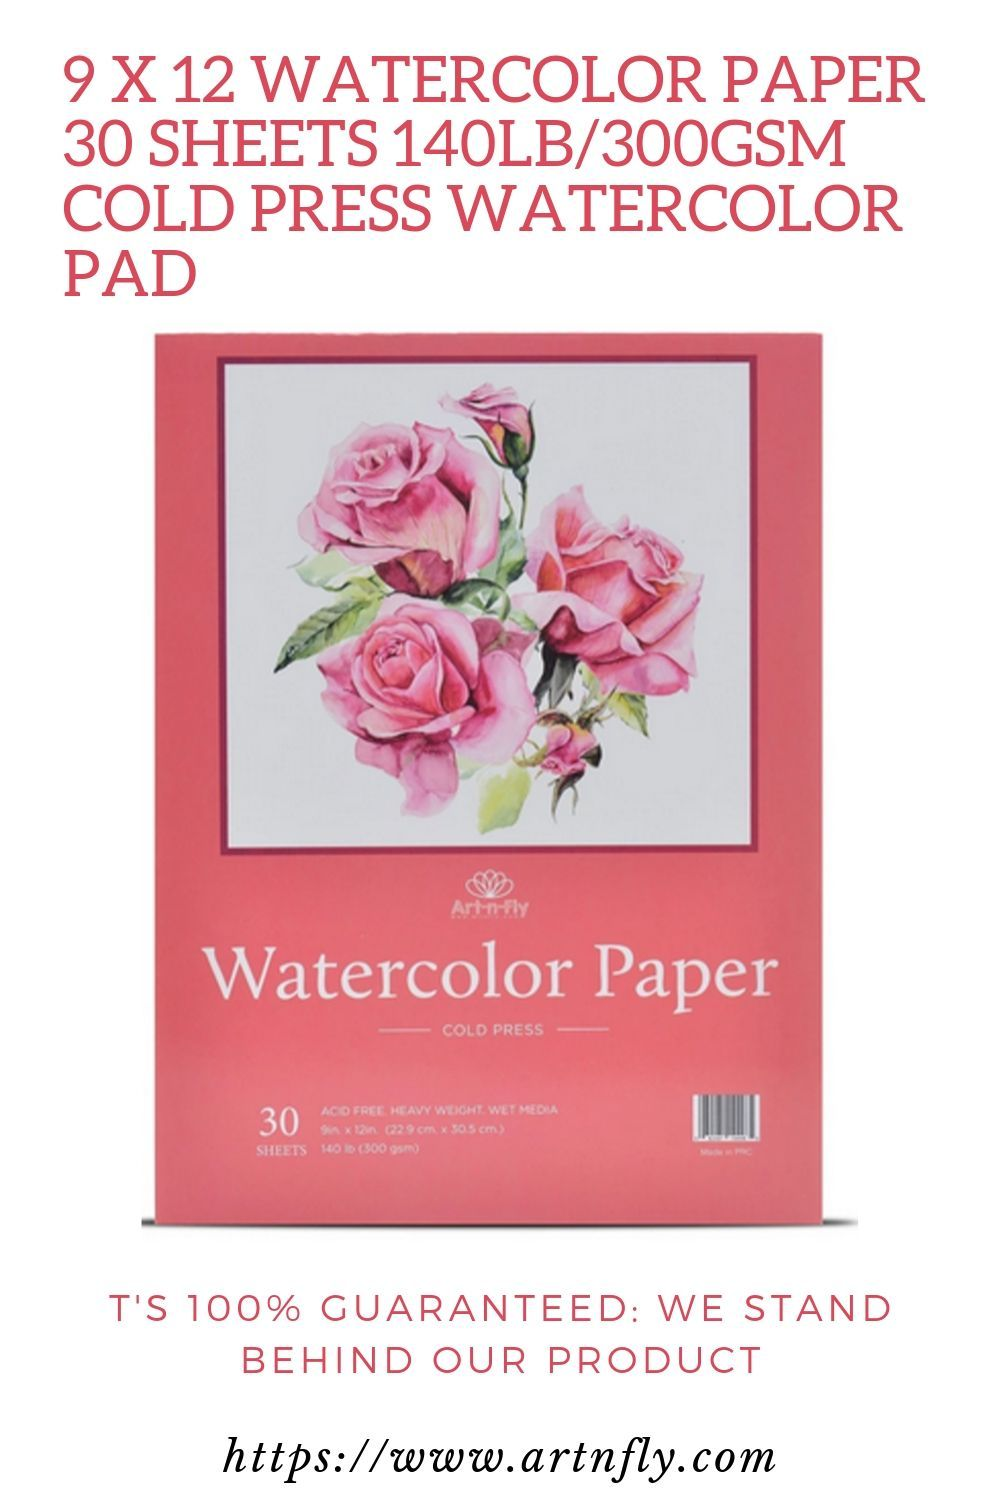 9 X 12 Watercolor Paper 30 Sheets 140lb 300gsm Cold Press